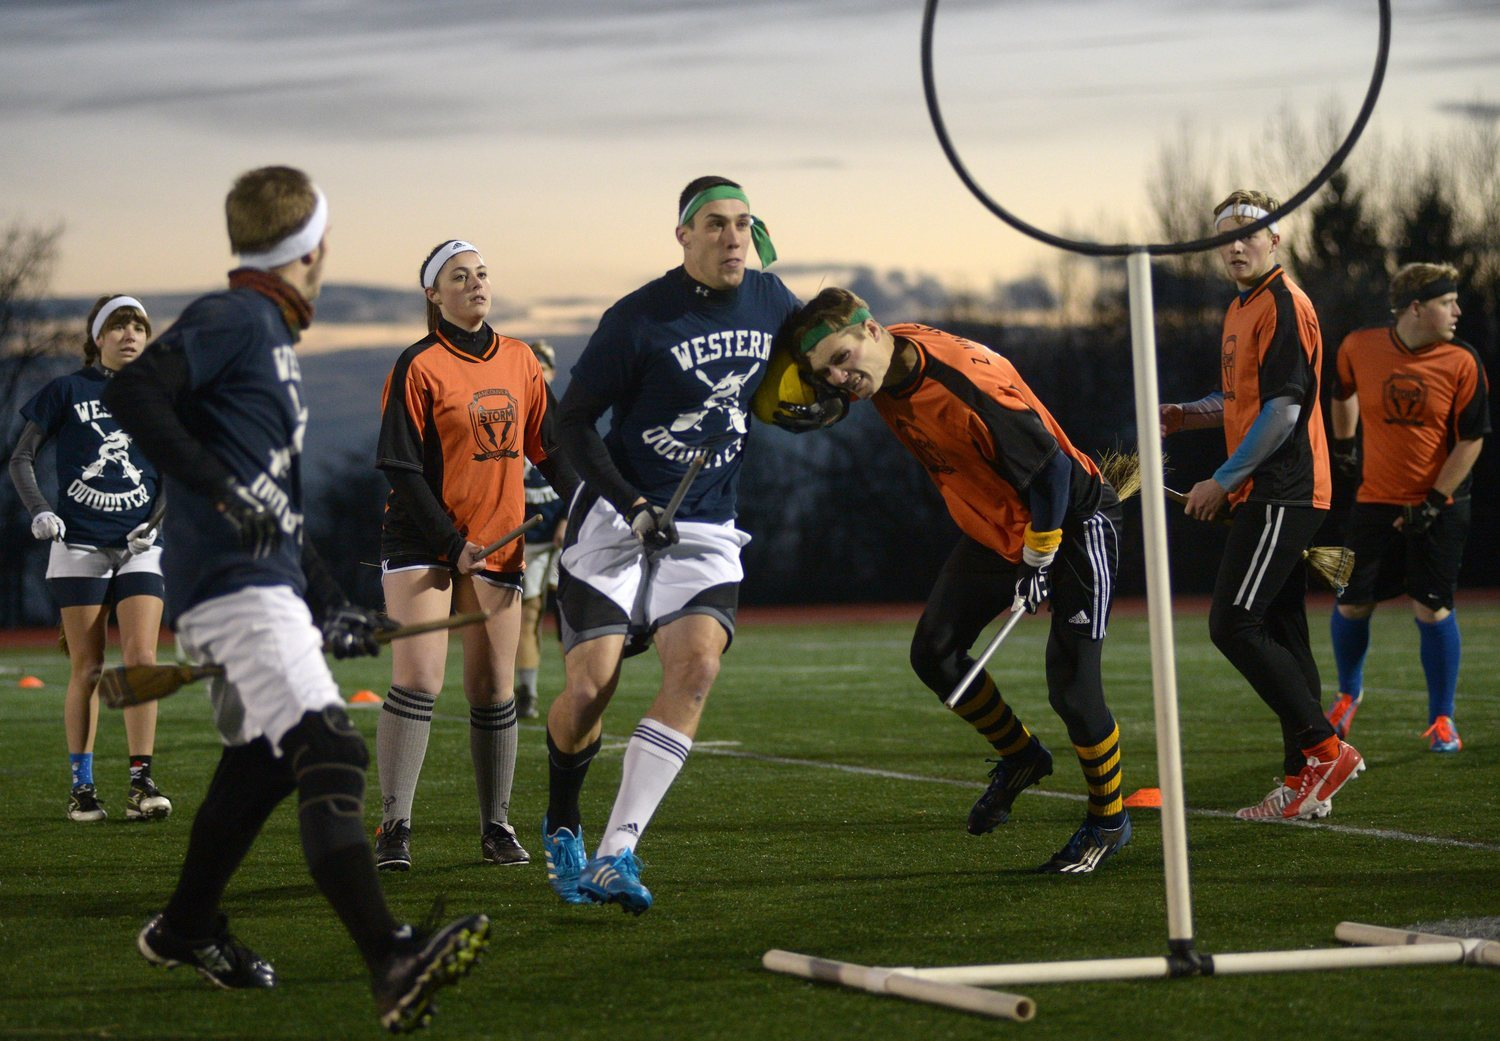 La pasión por Harry Potter ha hecho posible el Quidditch en la vida real.